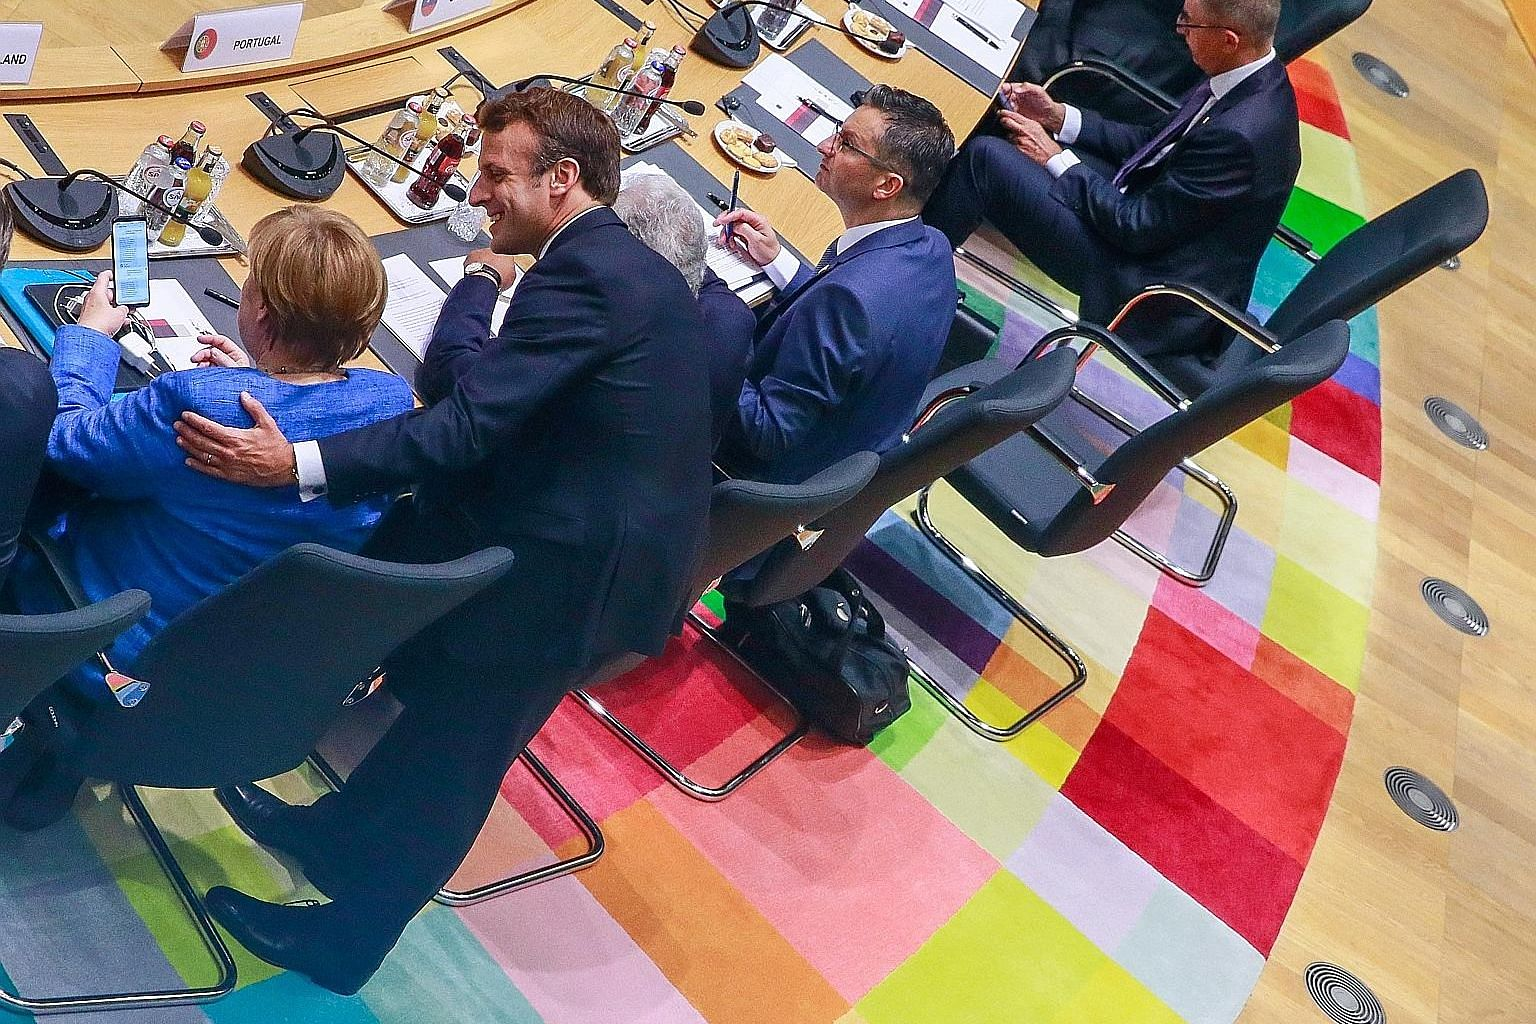 German Chancellor Angela Merkel and French President Emmanuel Macron at yesterday's summit of EU leaders in Brussels. PHOTO: REUTERS